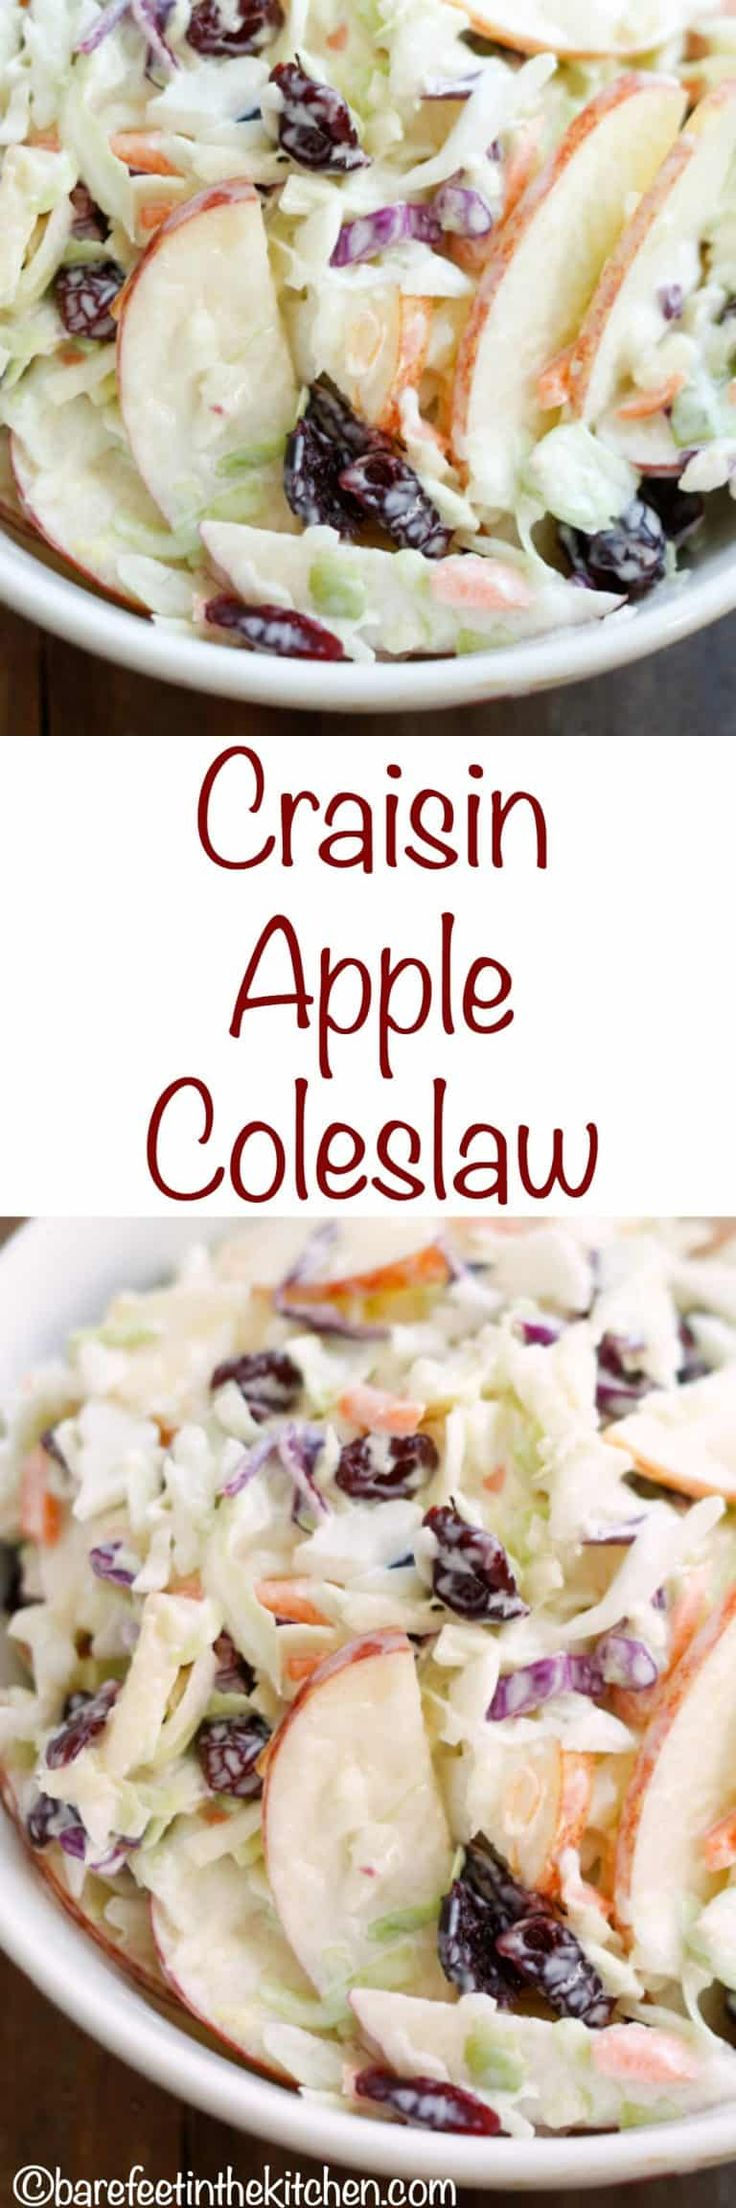 Sweet apples and cranberries are combined with crunchy cabbage and then tossed together in a tangy lemon dressing to make this Cranberry Apple Coleslaw. - get the recipe at barefeetinthekitchen.com